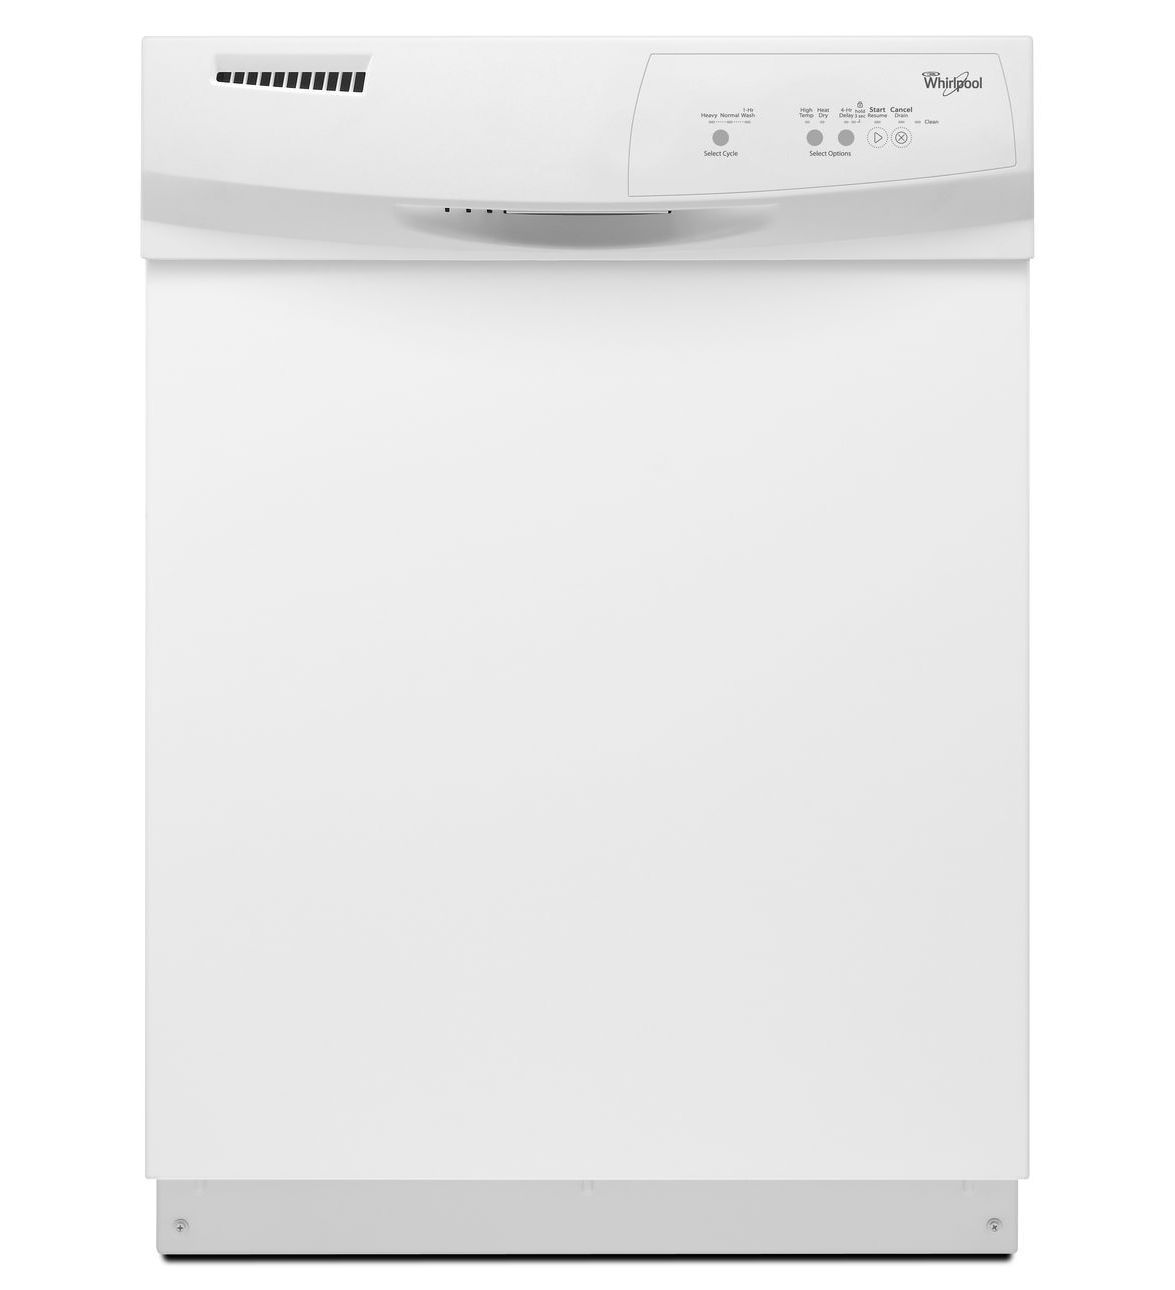 Whirlpool Dishwasher With Energy Star Qualification Model